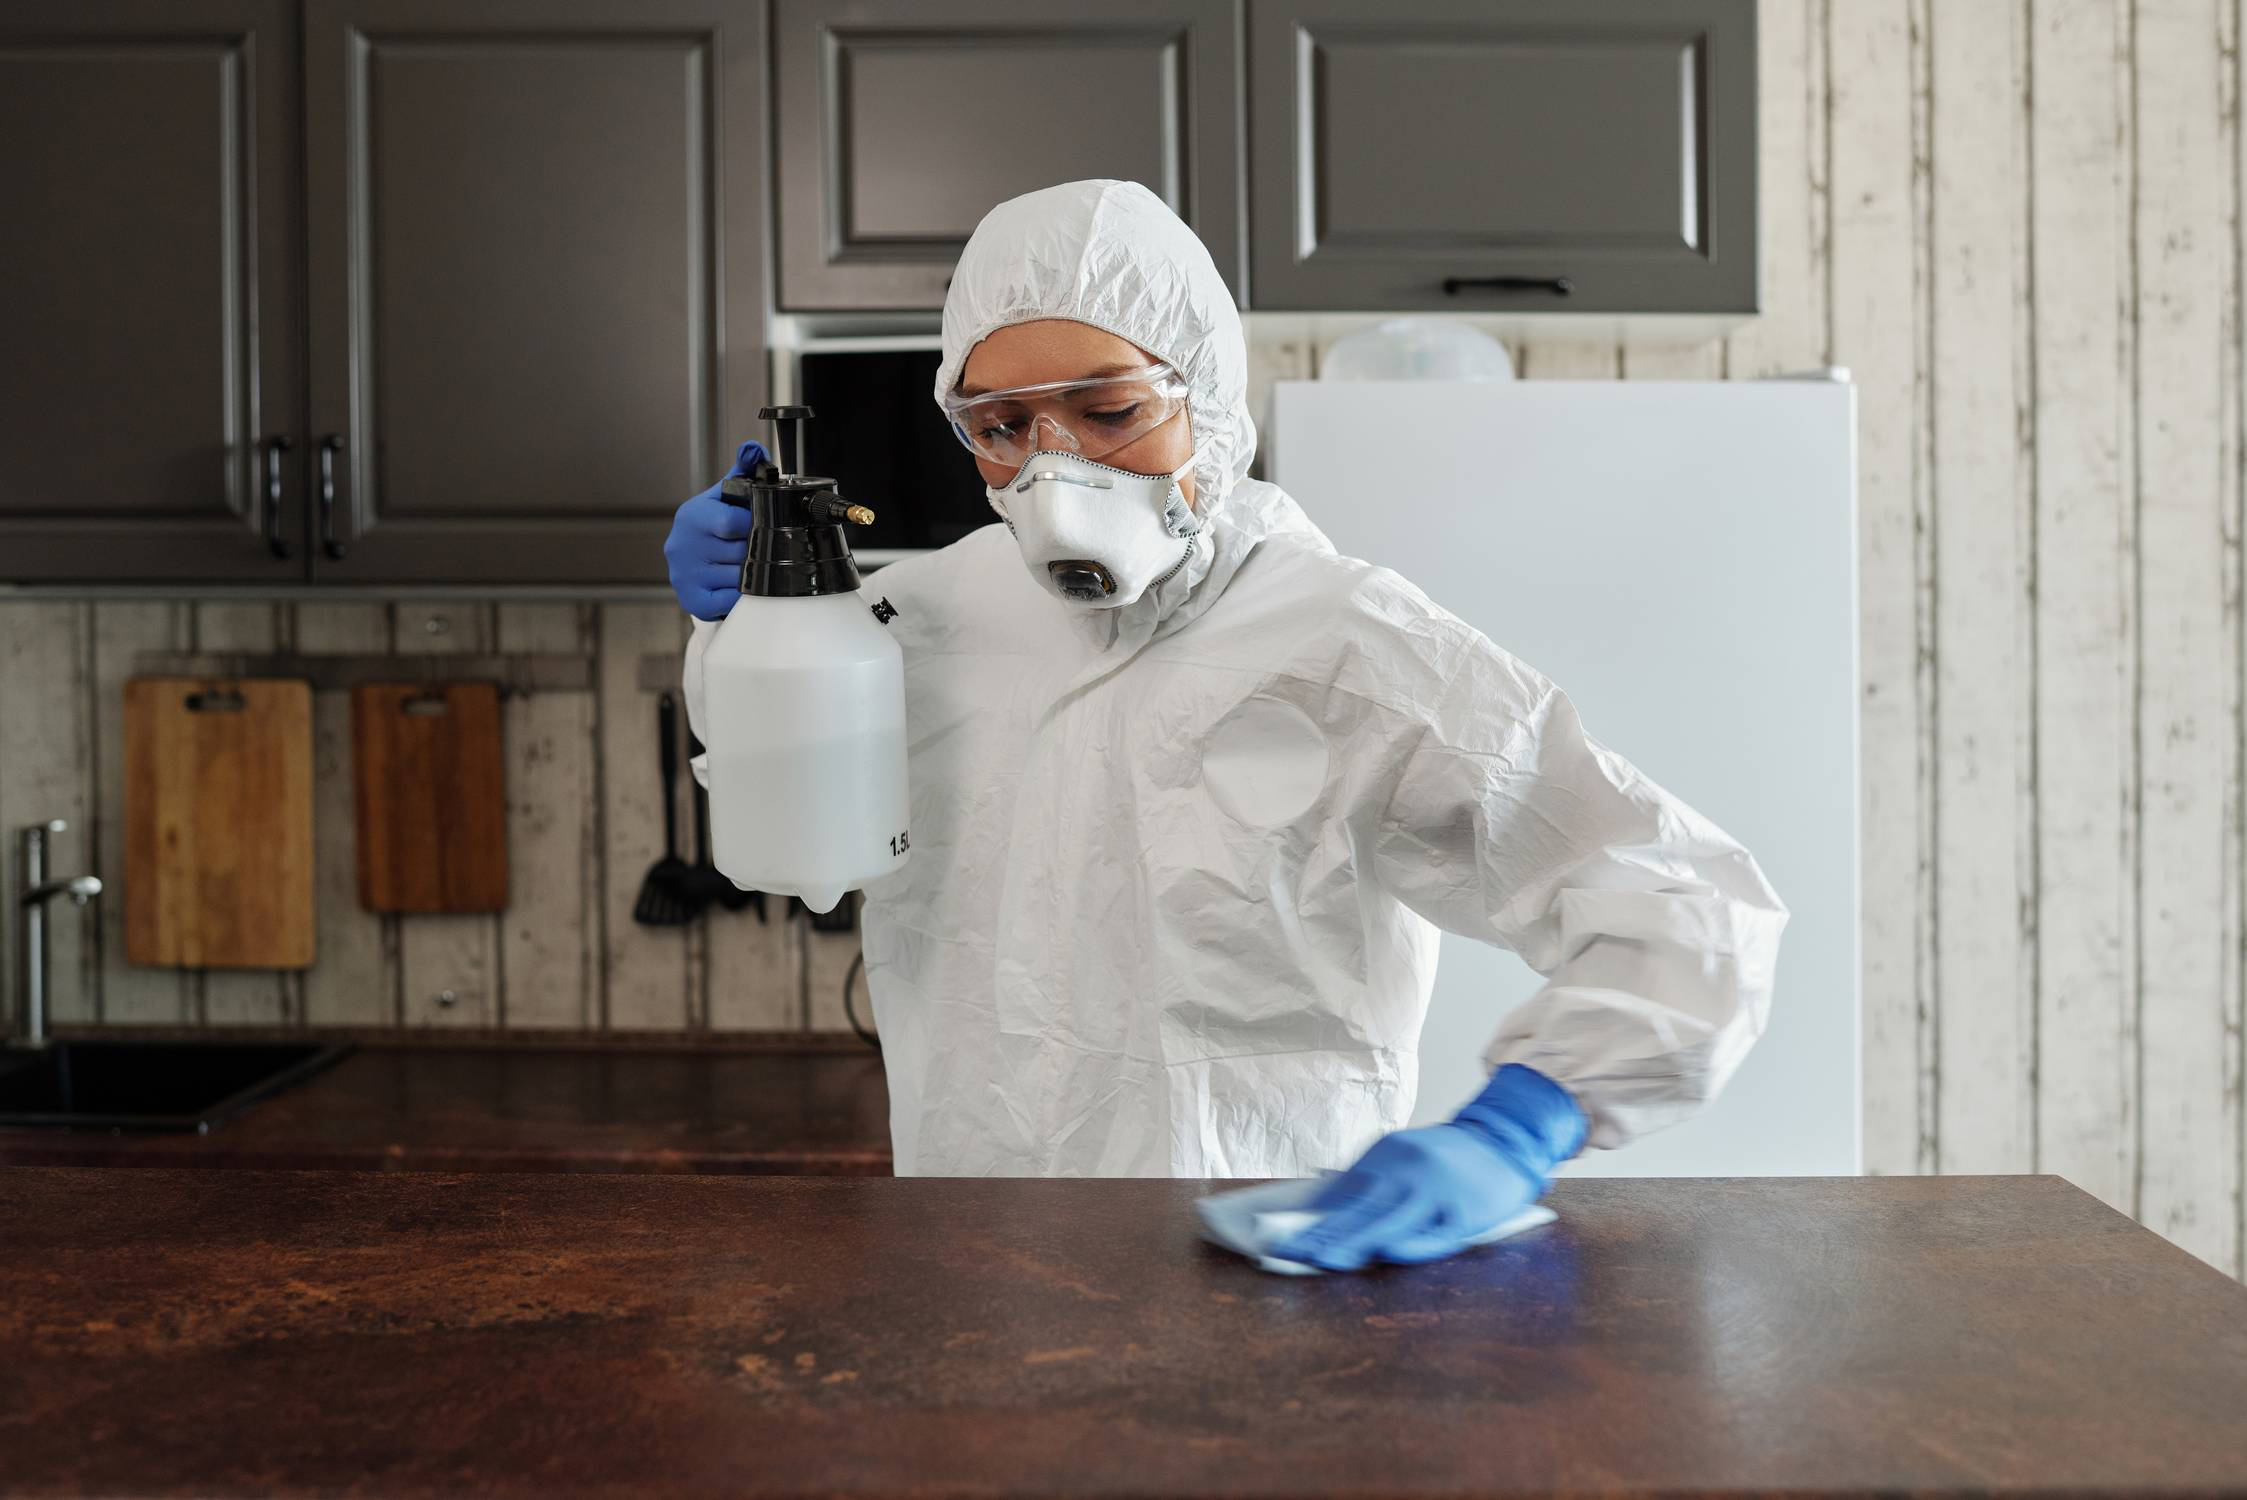 A woman in protective gear disinfecting tabletop in a kitchen